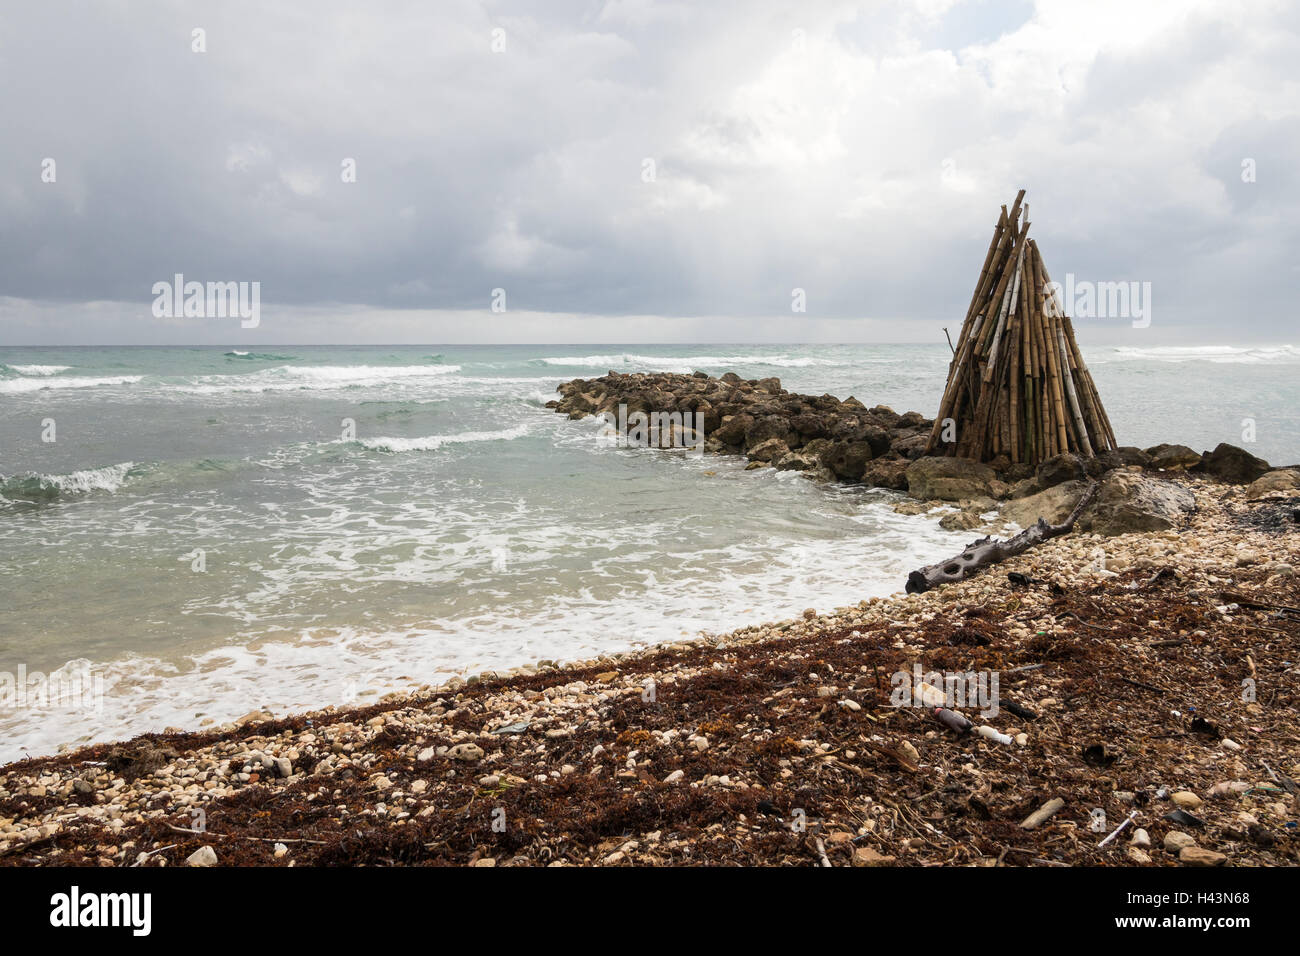 Stormy shore in Montego Bay, Jamaica - Stock Image